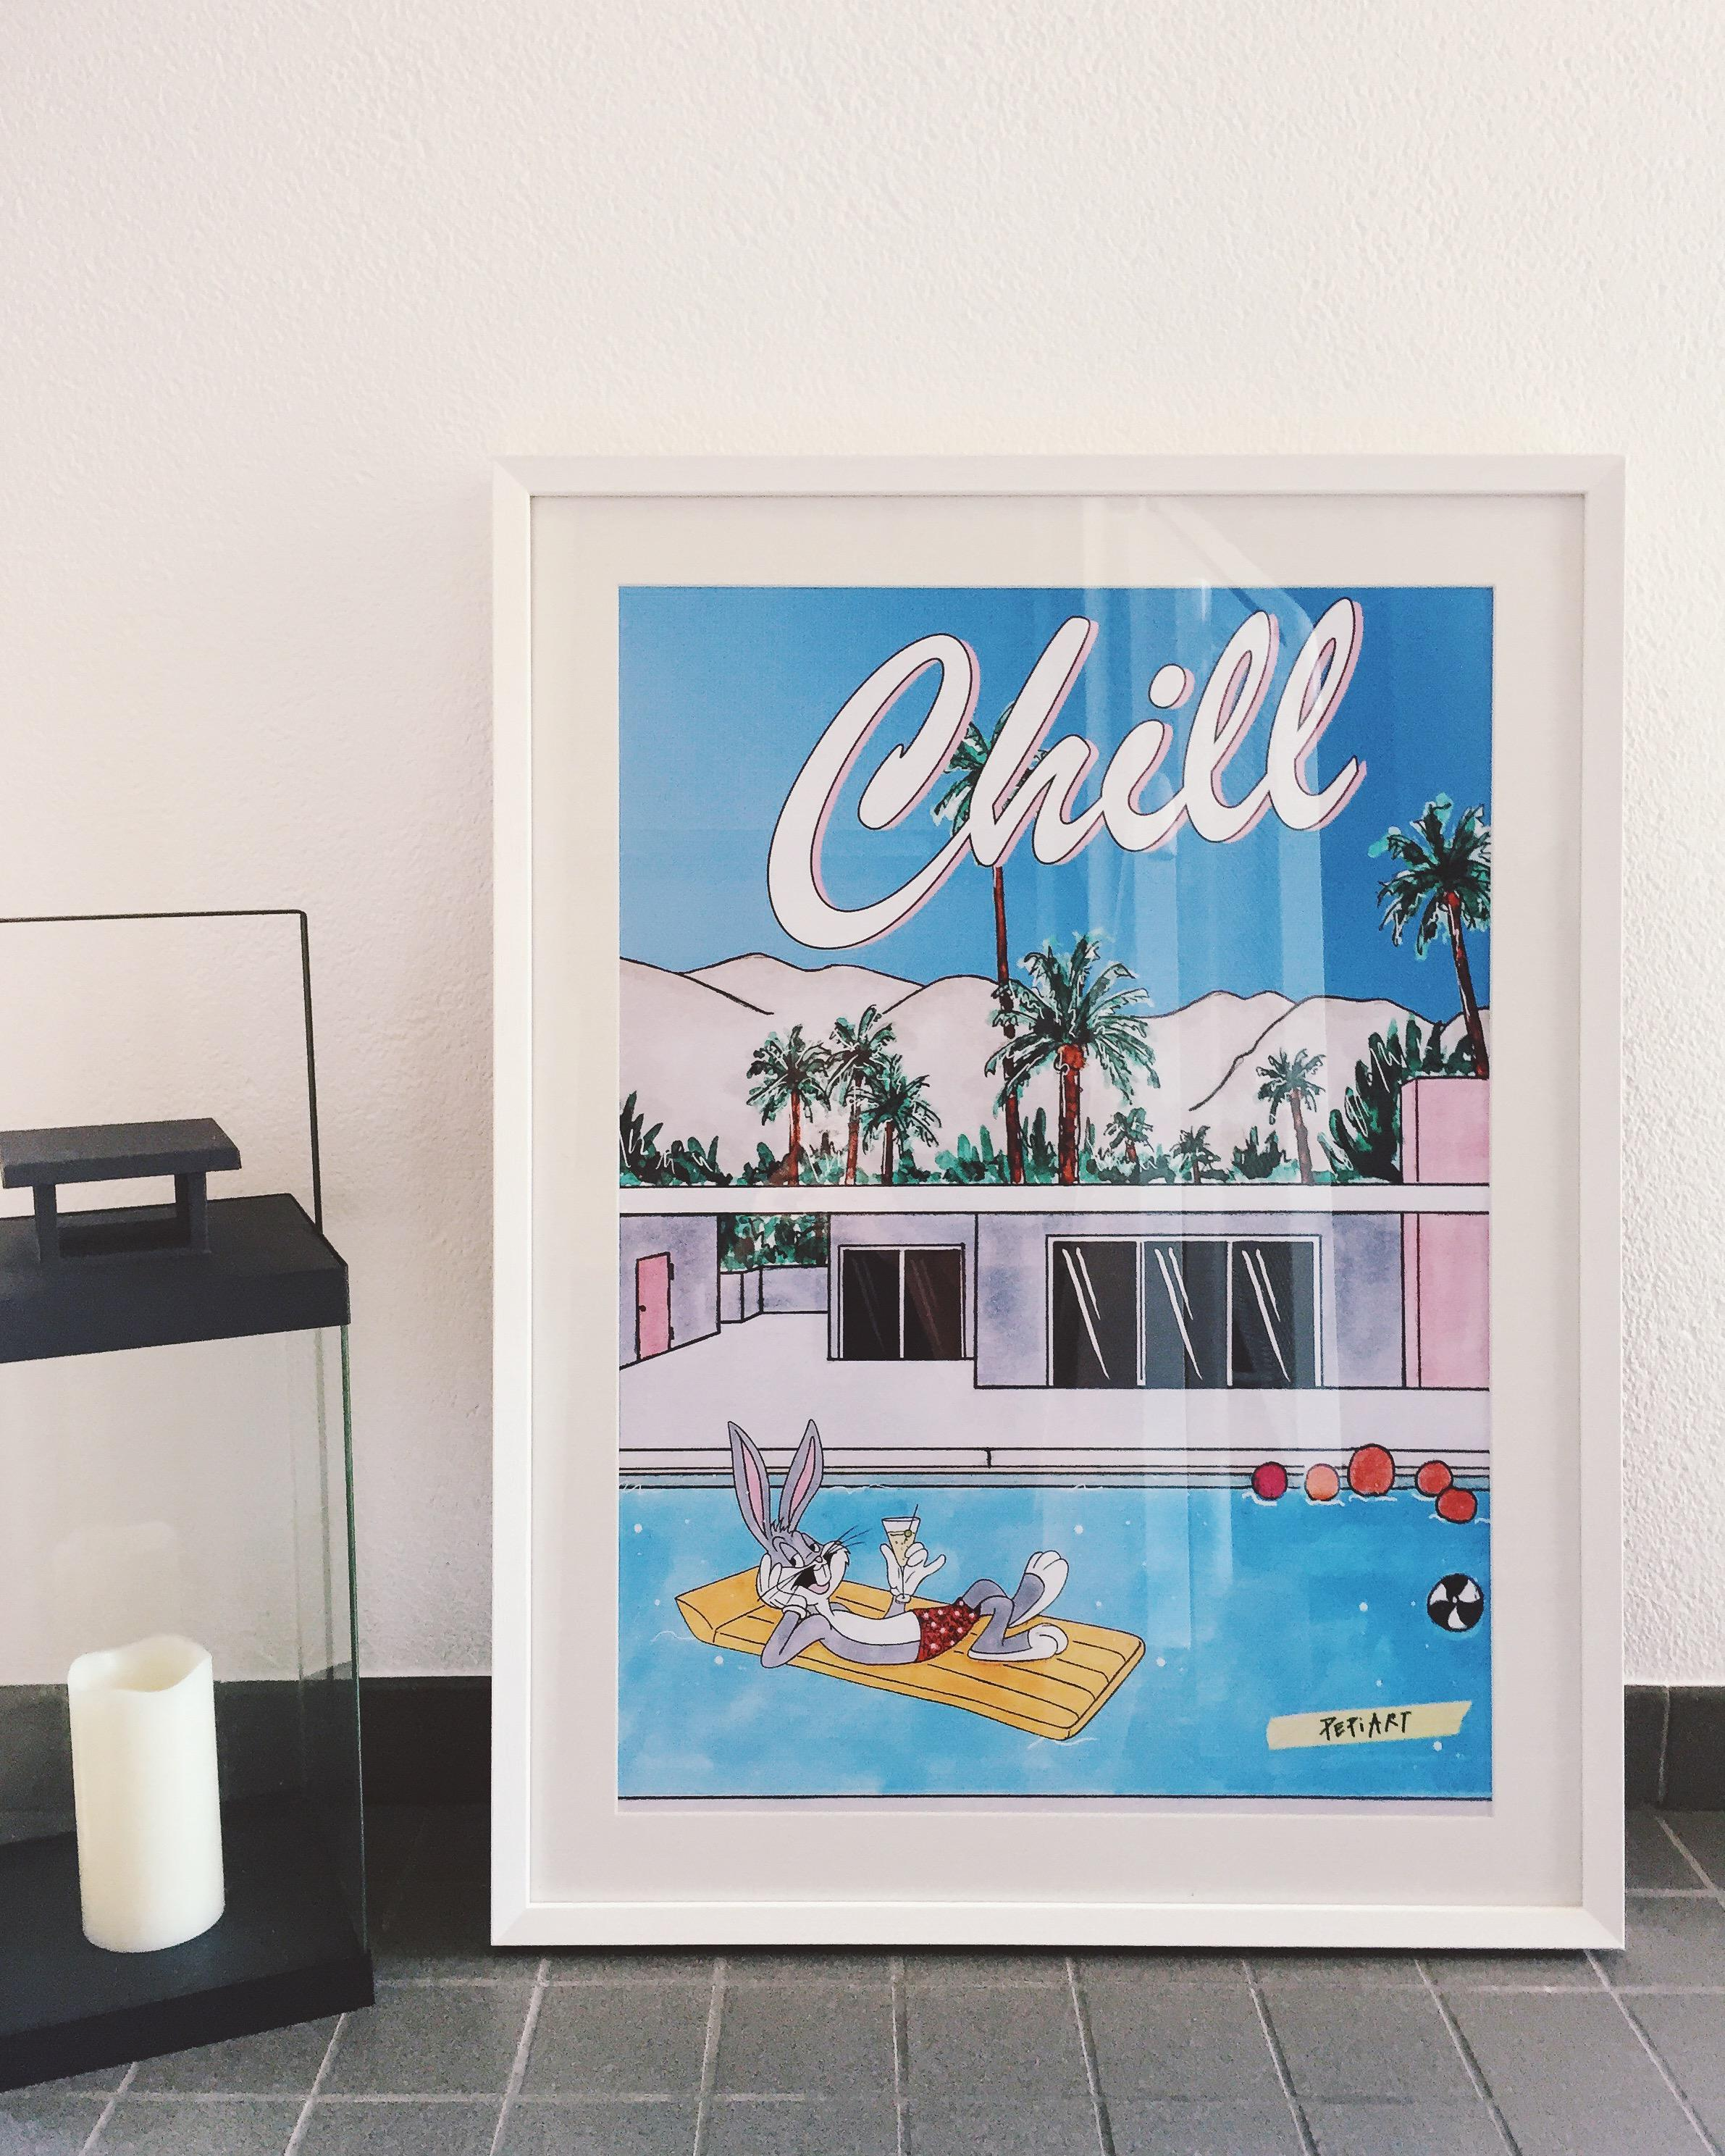 CHILL #mypepiartprint #pool #poster ©PEPIART